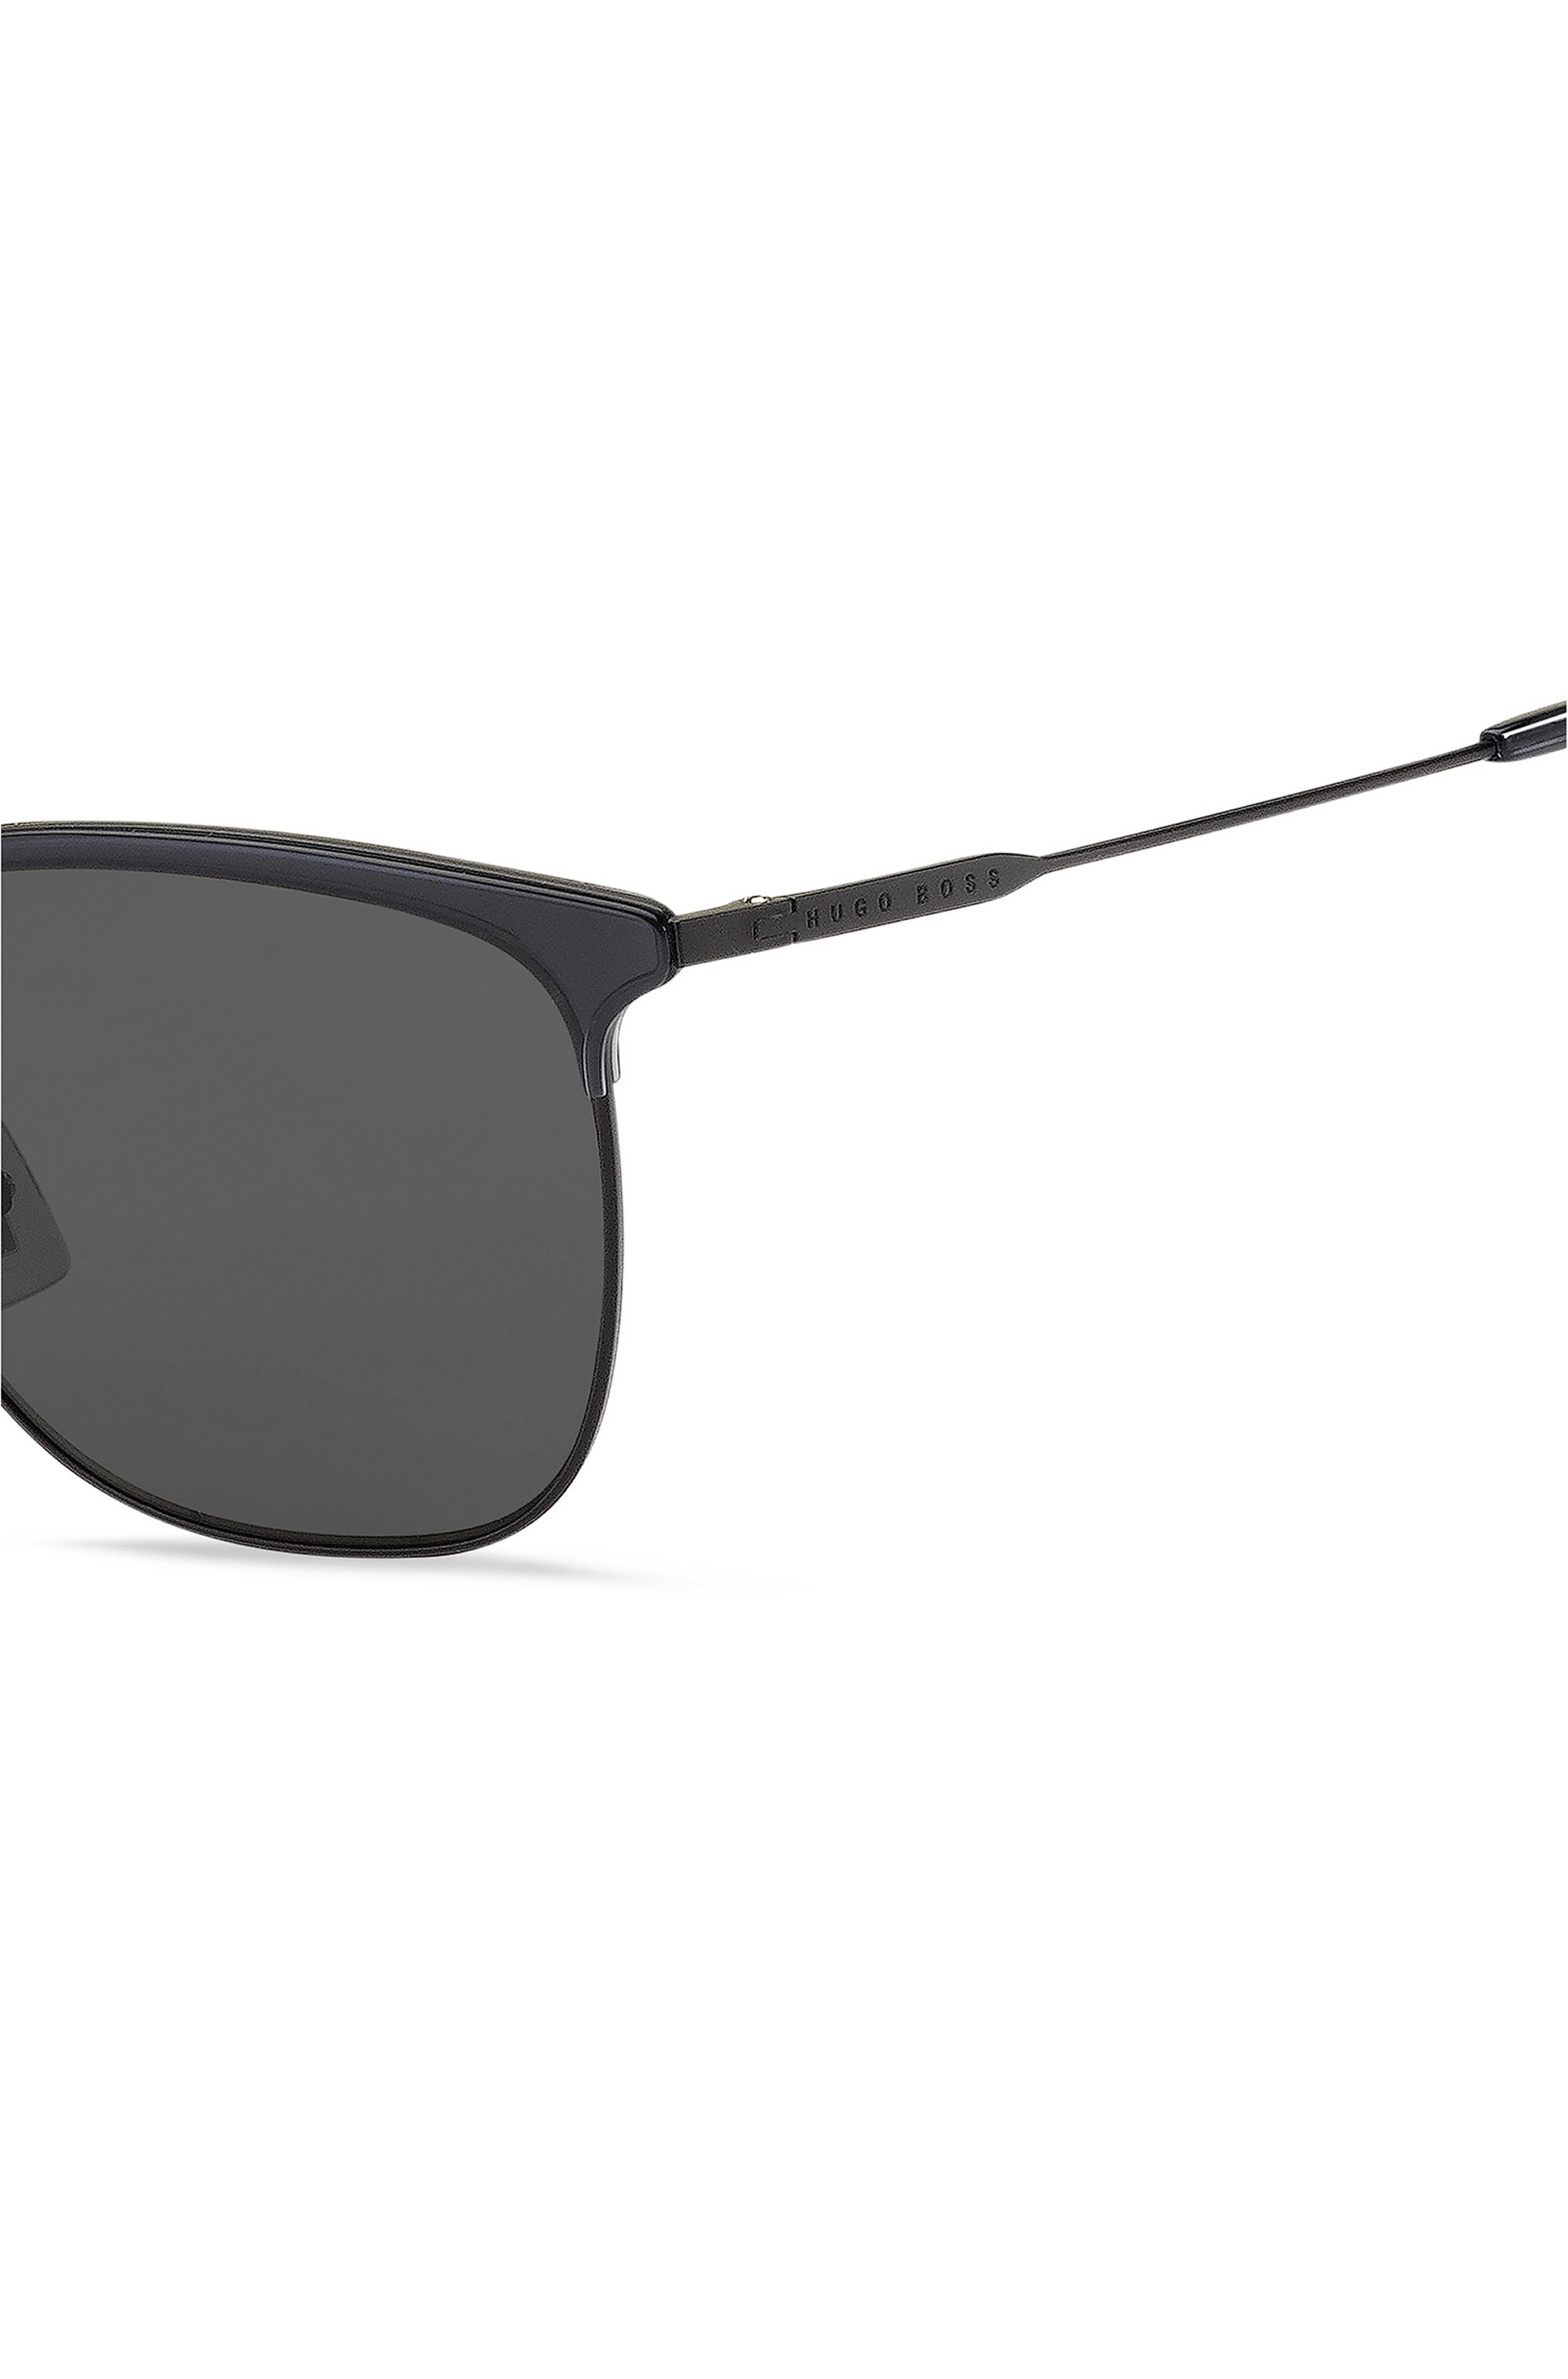 Lightweight sunglasses in matte black with grey lenses